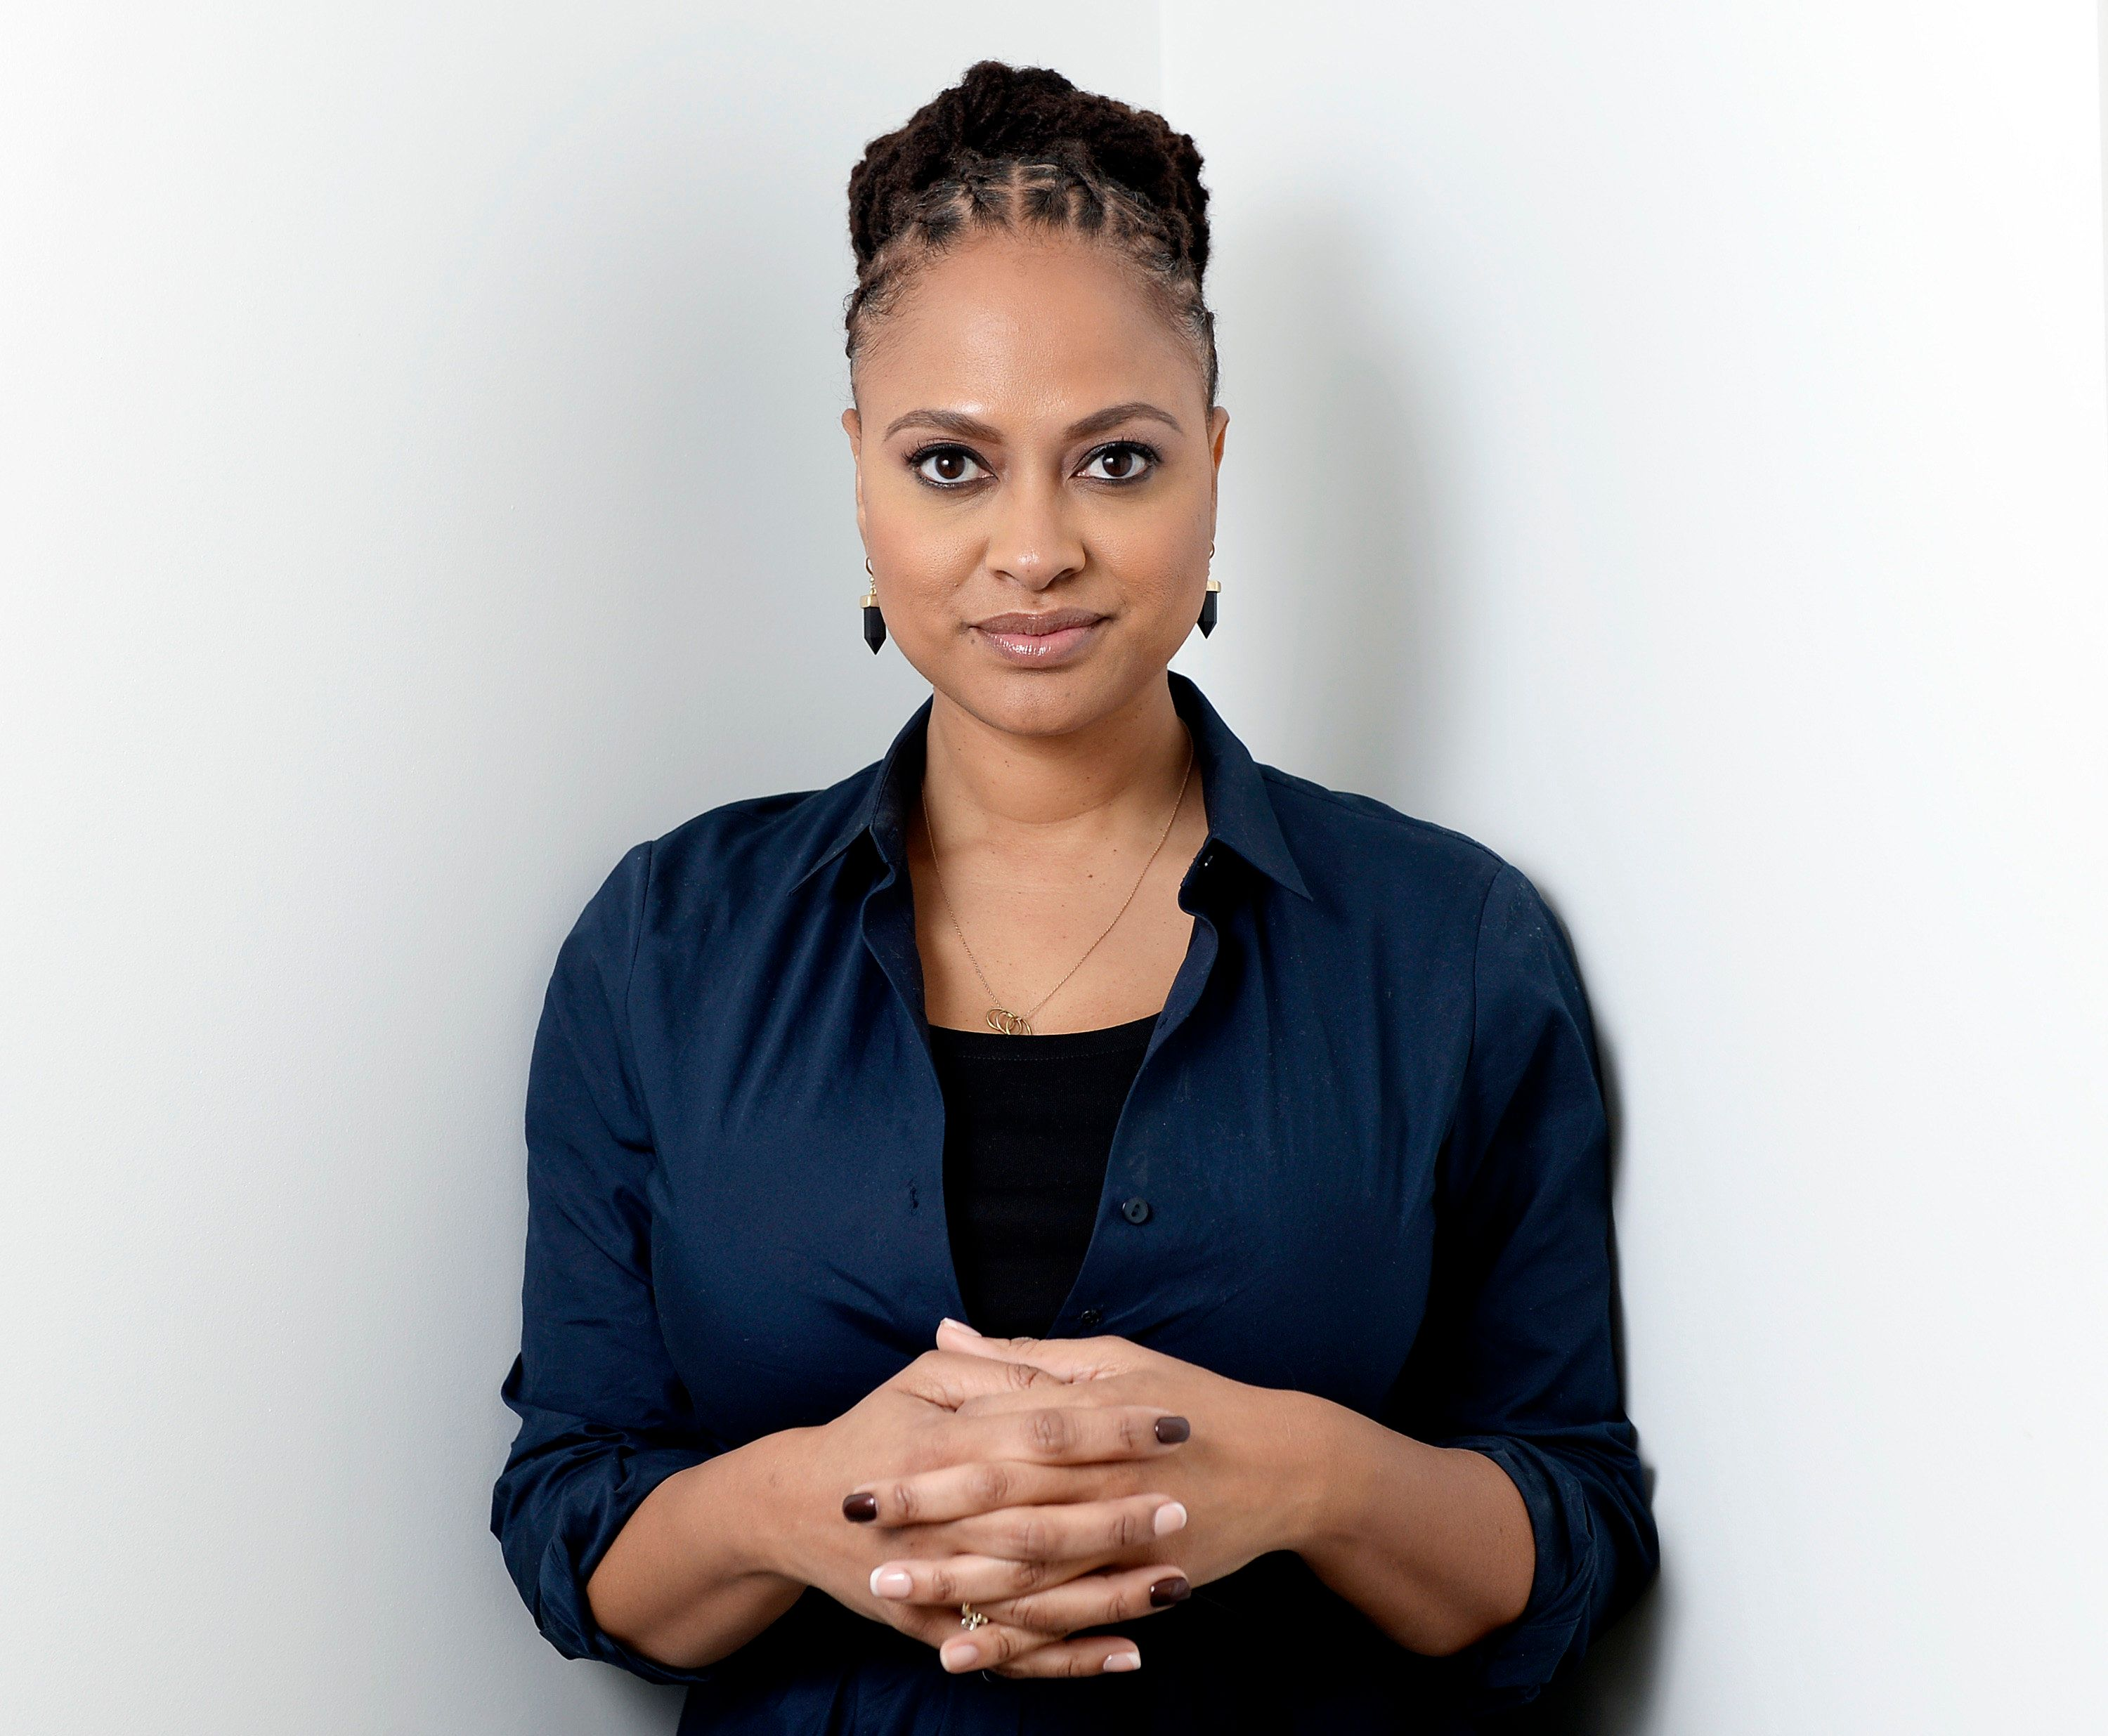 """Ava DuVernay, director of the film """"Selma,"""" poses in Los Angeles, California, December 23, 2014. The last film DuVernay directed cost $200,000, while her new movie """"Selma"""" was 100 times that. It was a big step up for the former Hollywood publicist, one that has reaped recognition even before the awards season takes off at the Golden Globes on January 11, 2015. Picture taken December 23, 2014. . REUTERS/Kevork Djansezian  (UNITED STATES - Tags: ENTERTAINMENT PORTRAIT) - RTR4KB6E"""